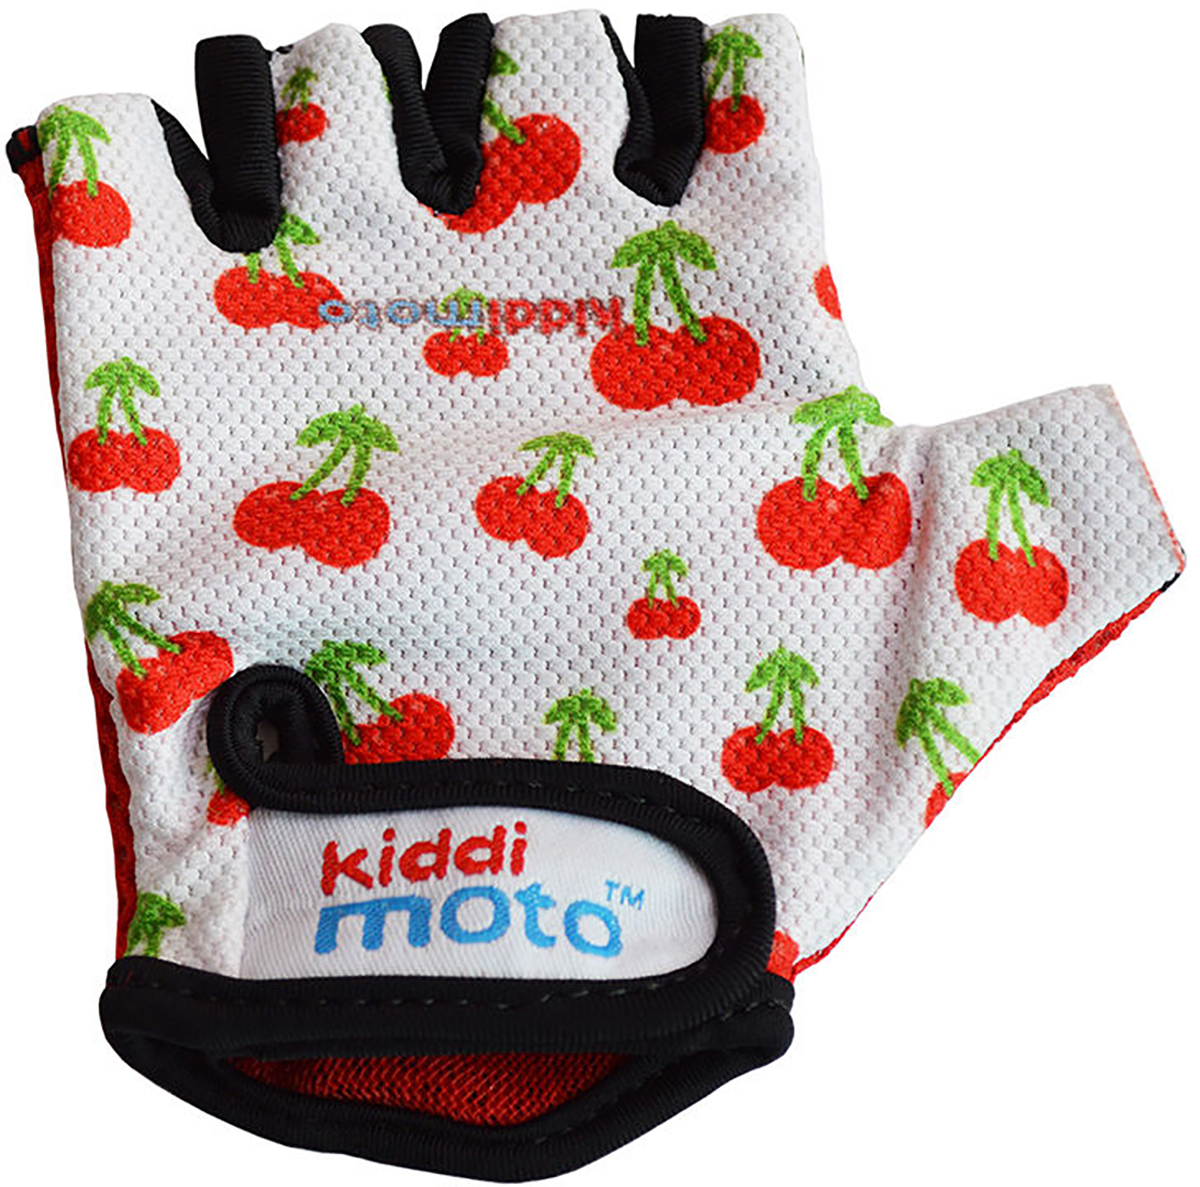 Kiddimoto Cherry Handsker - Barn | Gloves